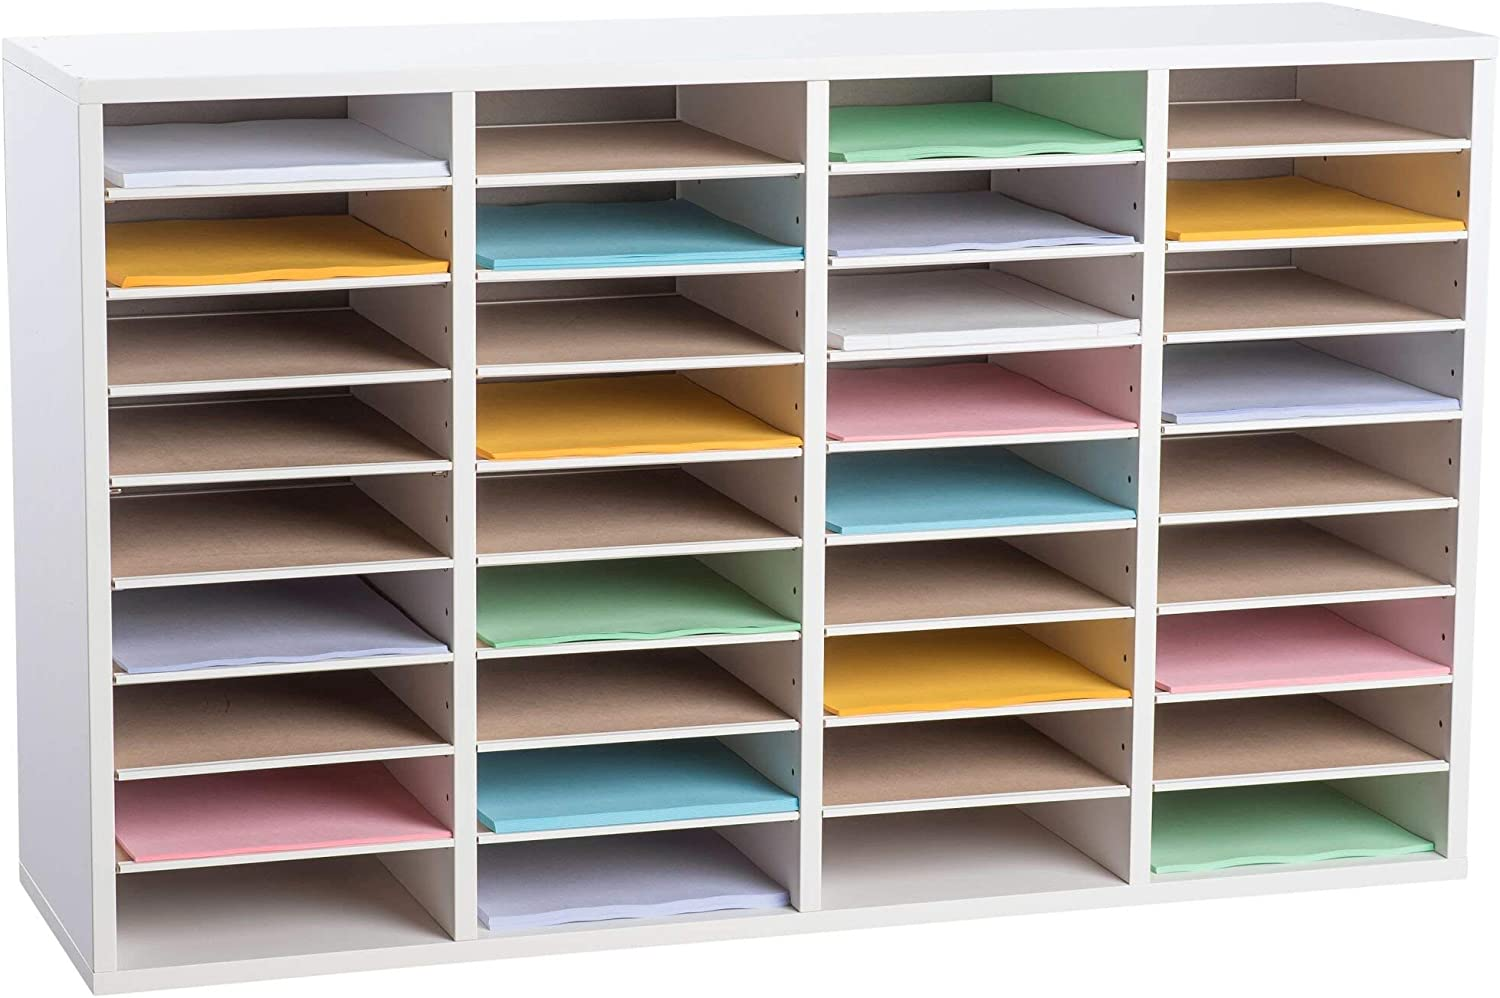 AdirOffice Wood Adjustable Literature Organizer - Removable Shelves - Heavy Duty Stackable Literature Organizer - Great for Office, Classrooms and Mail Rooms (36 Compartment, White)